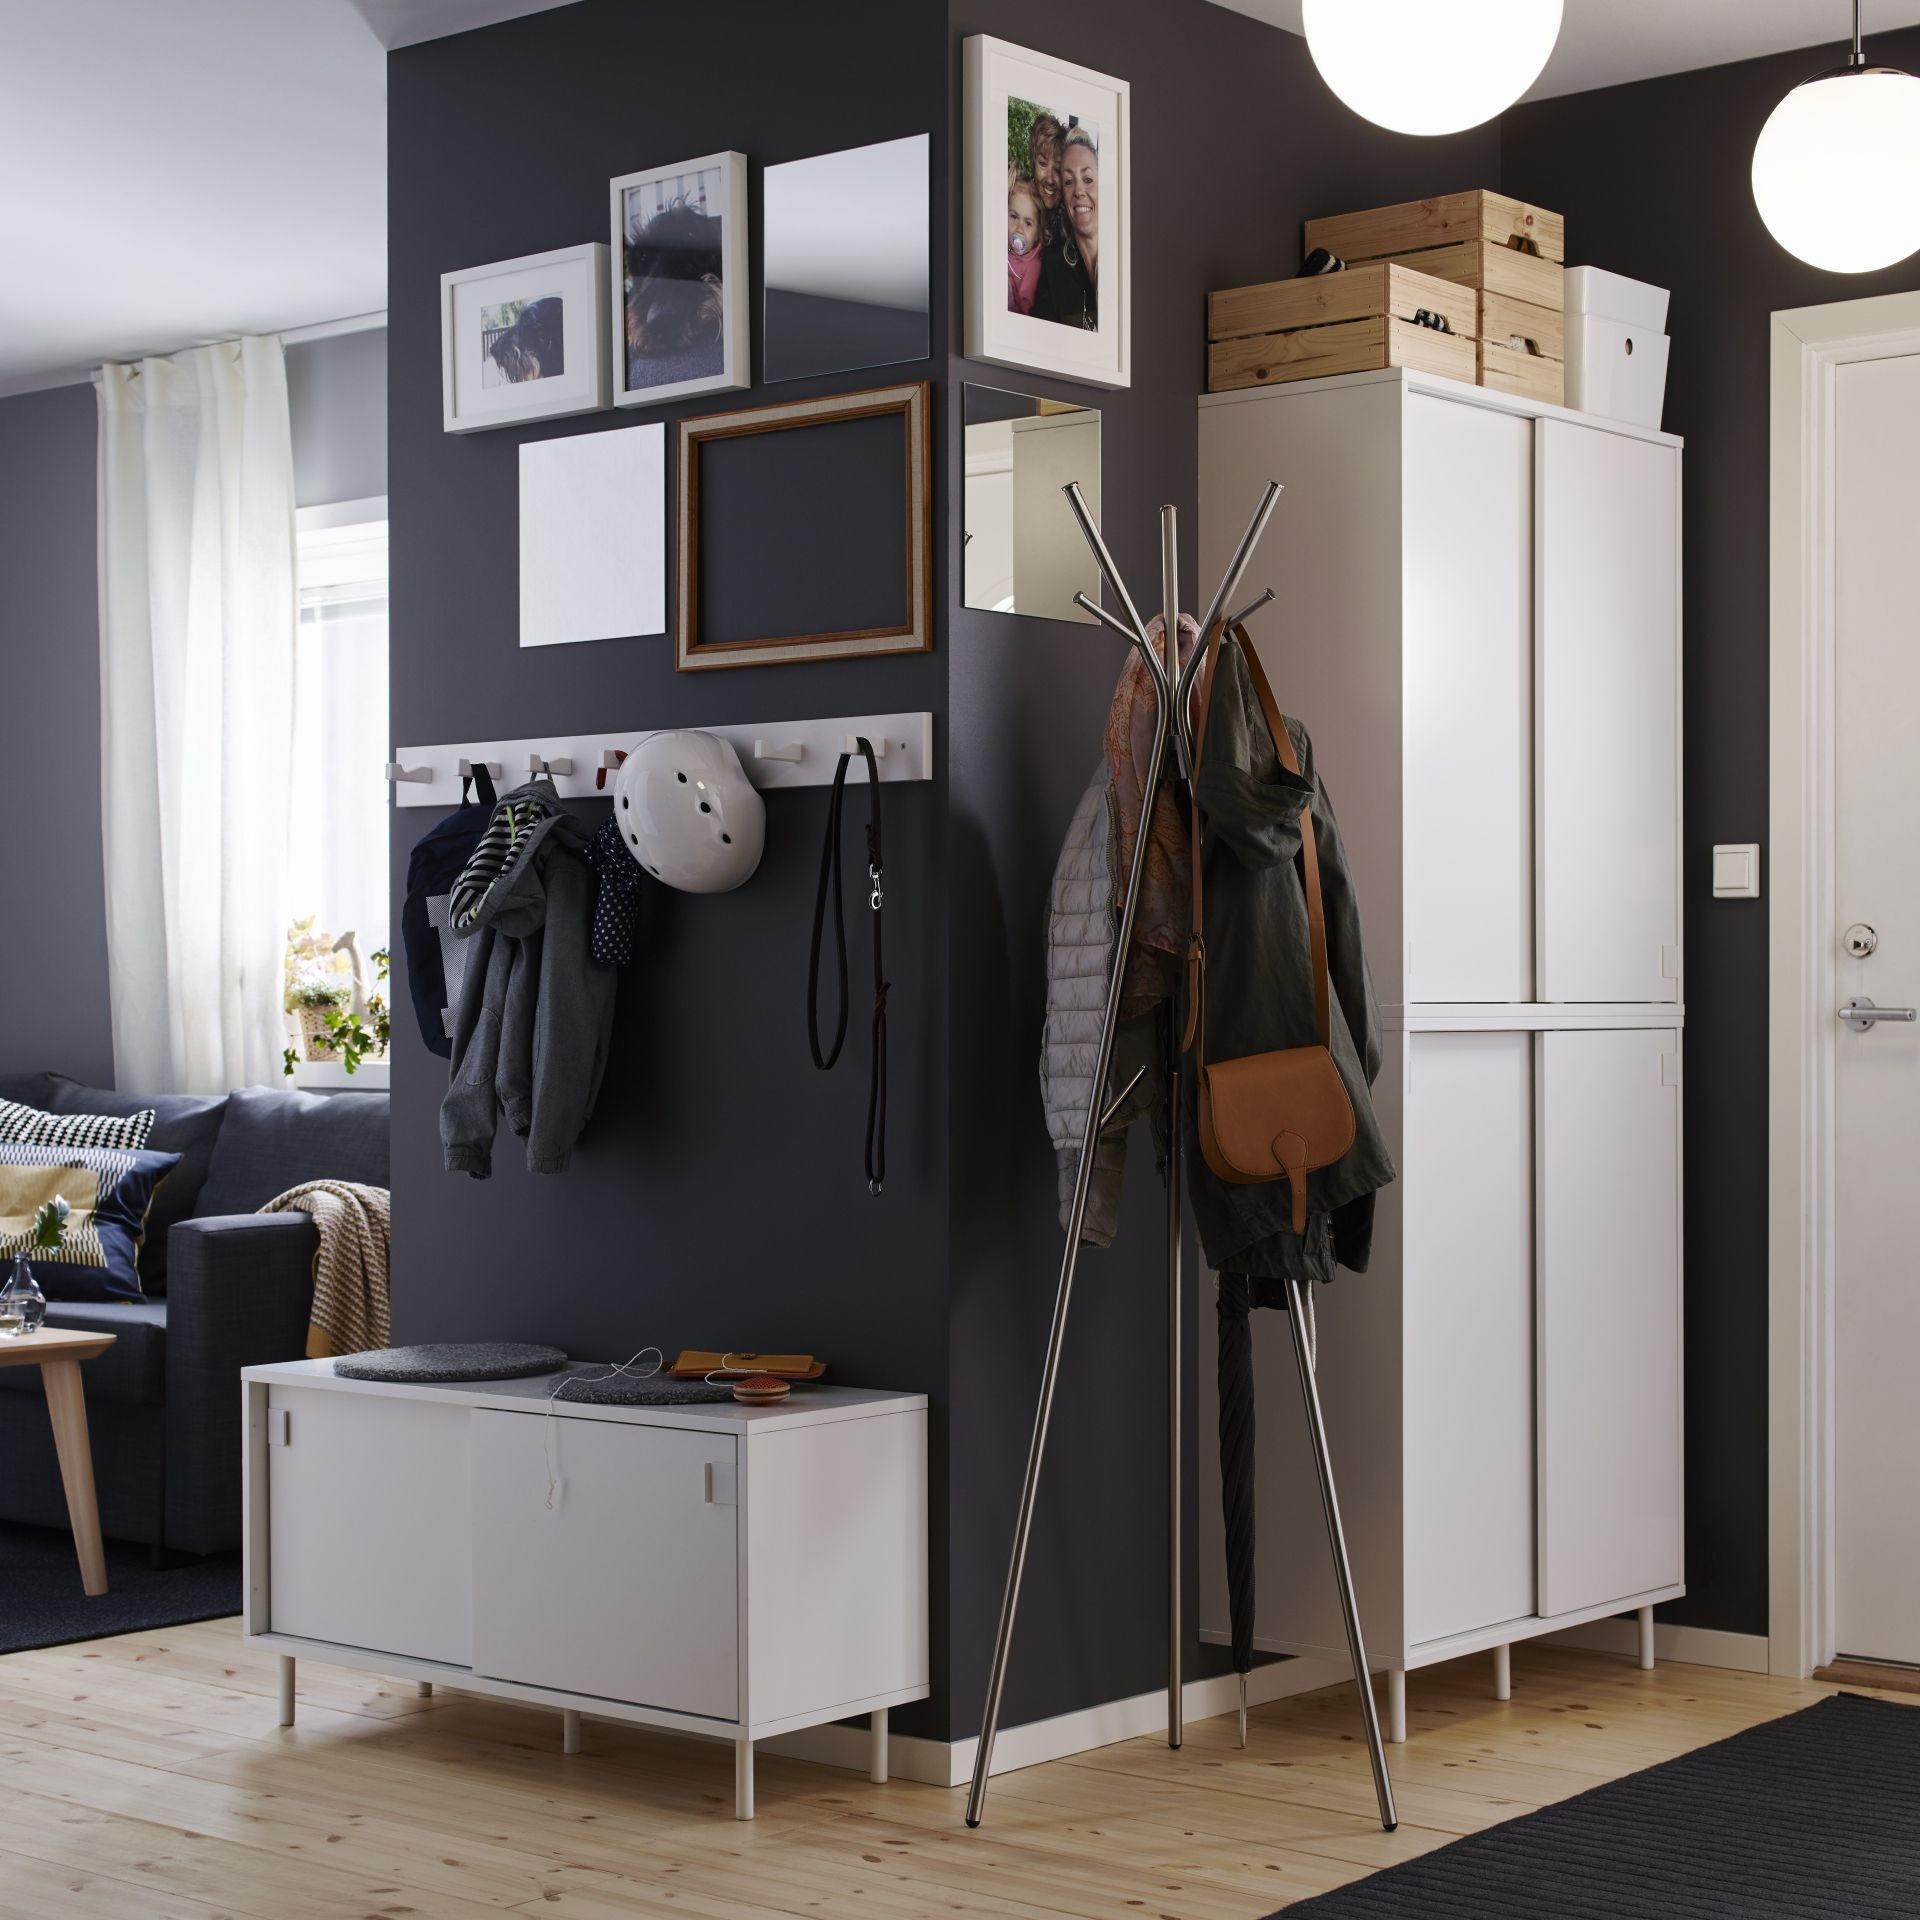 Mackap R Bank Met Opbergvakken Interiors Ikea Hack And